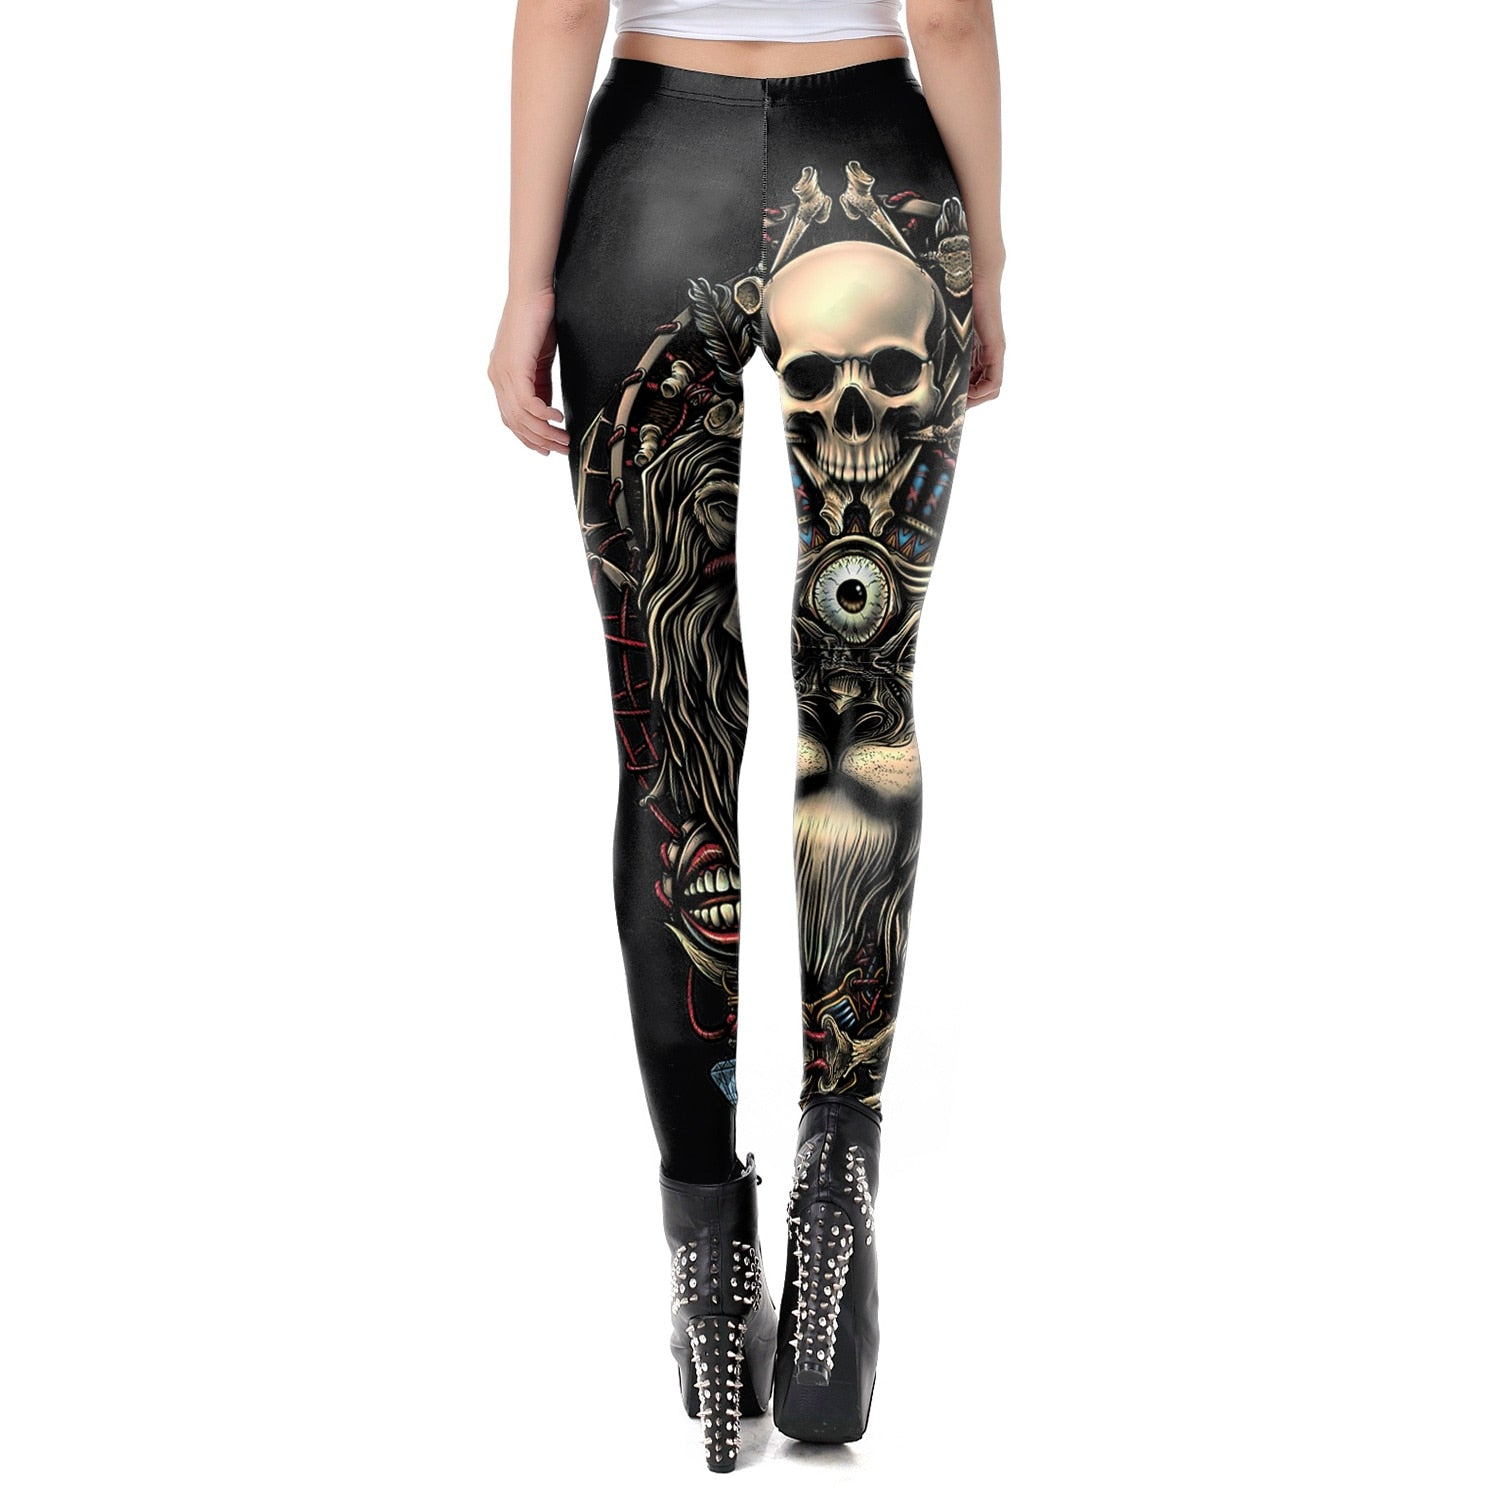 Leggings Style Gothique Punk Rock